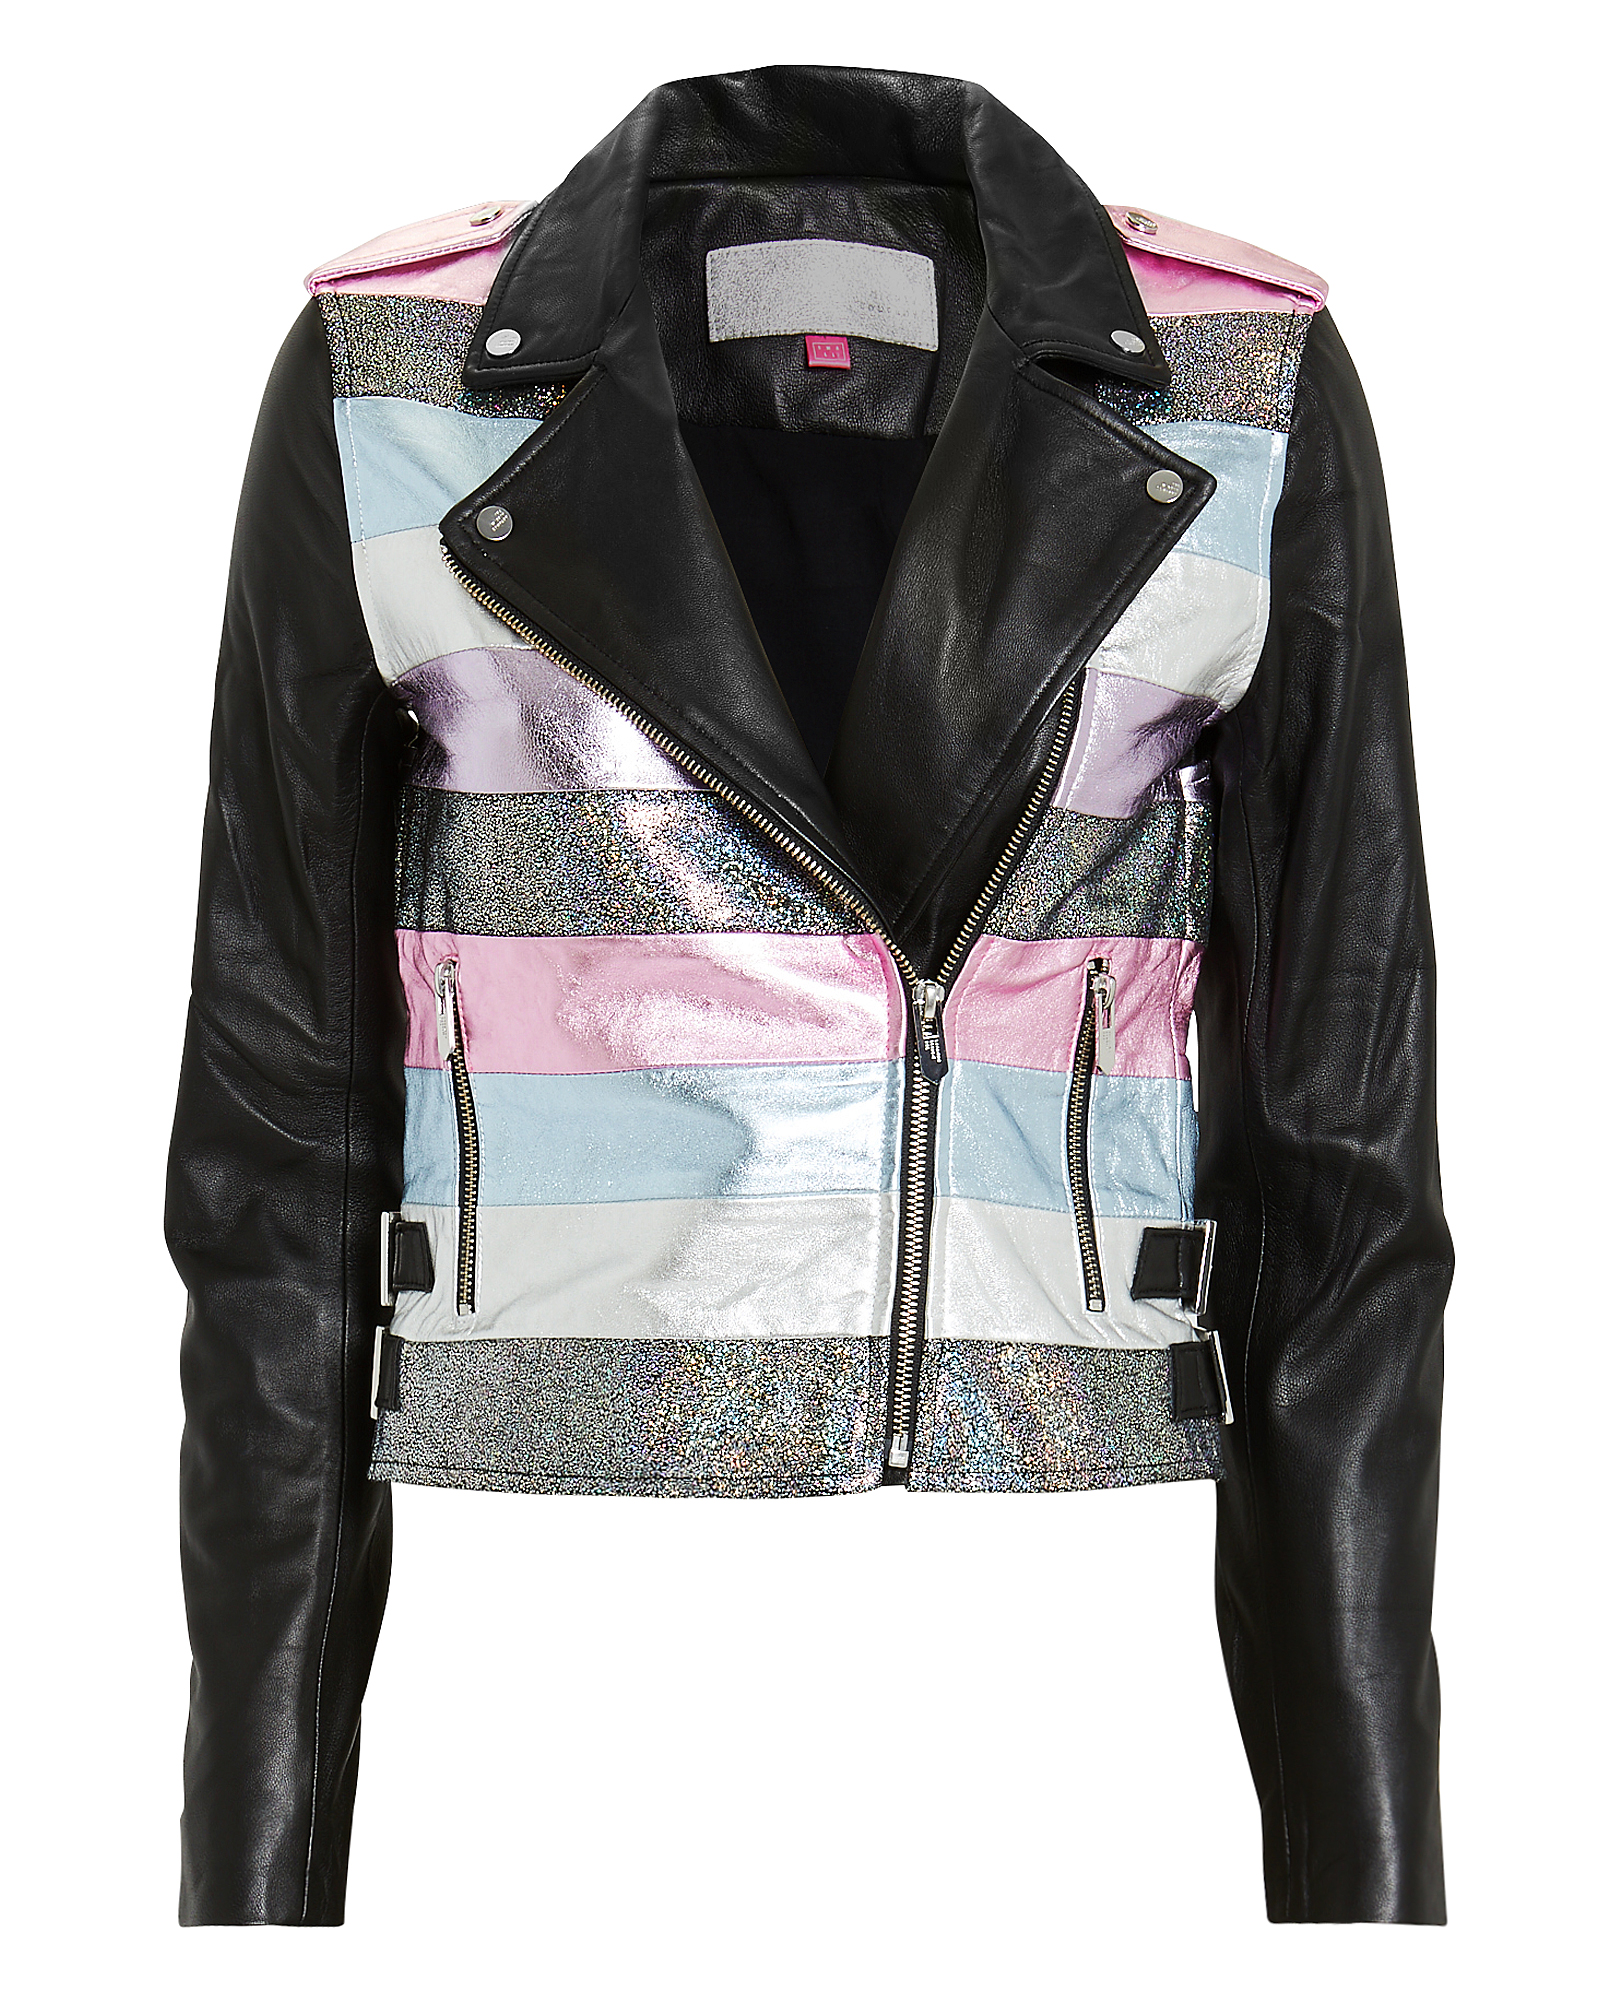 THE MIGHTY COMPANY The Mighty Comany Nesso Cro Leather Jacket Black/Metallic Strie